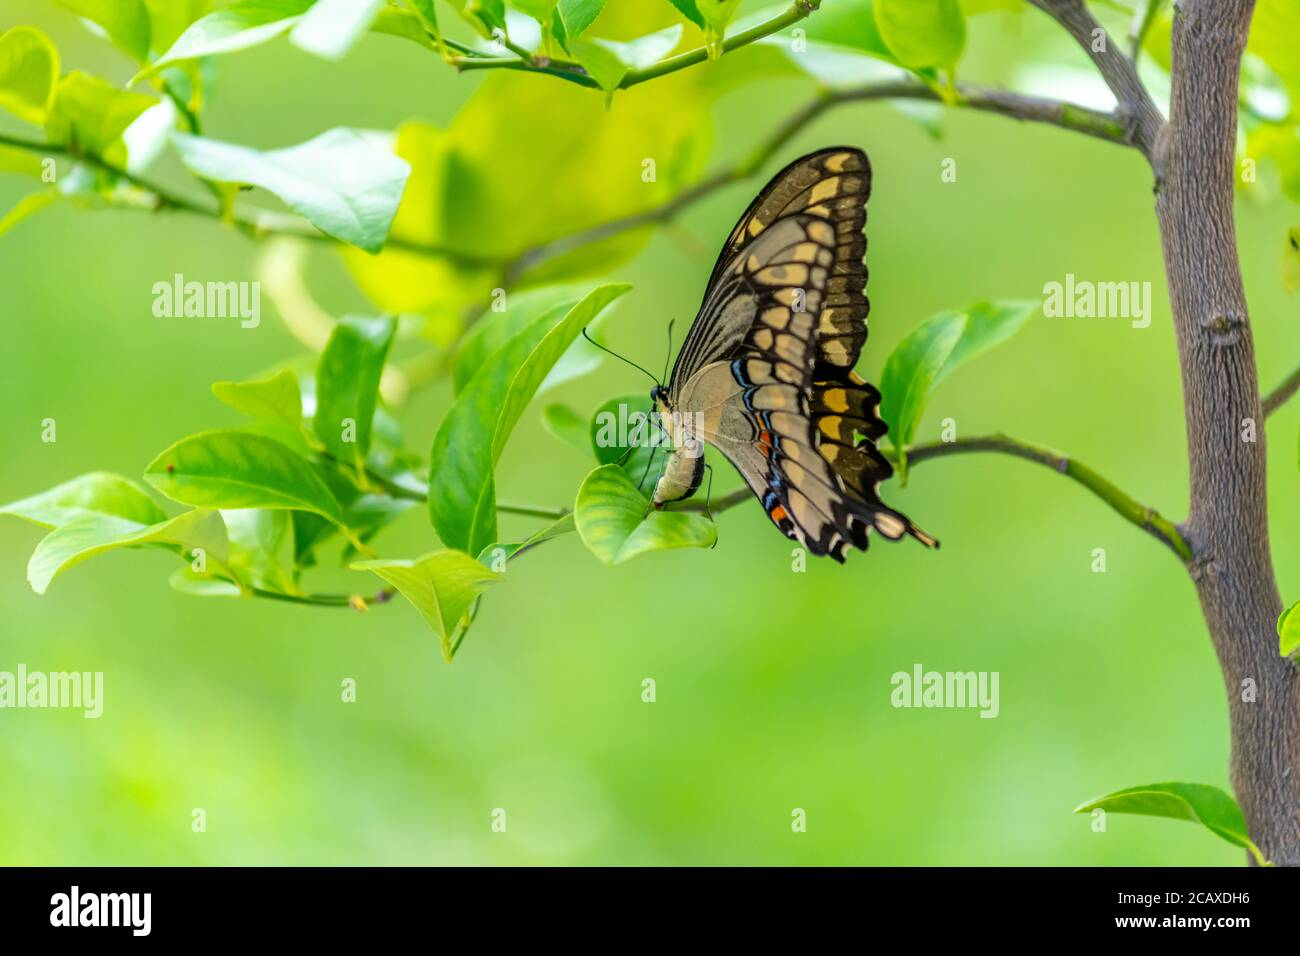 A Female Eastern Giant Swallowtail (Papilio cresphontes) laying an egg (just visible) on a potted lemon tree. Stock Photo